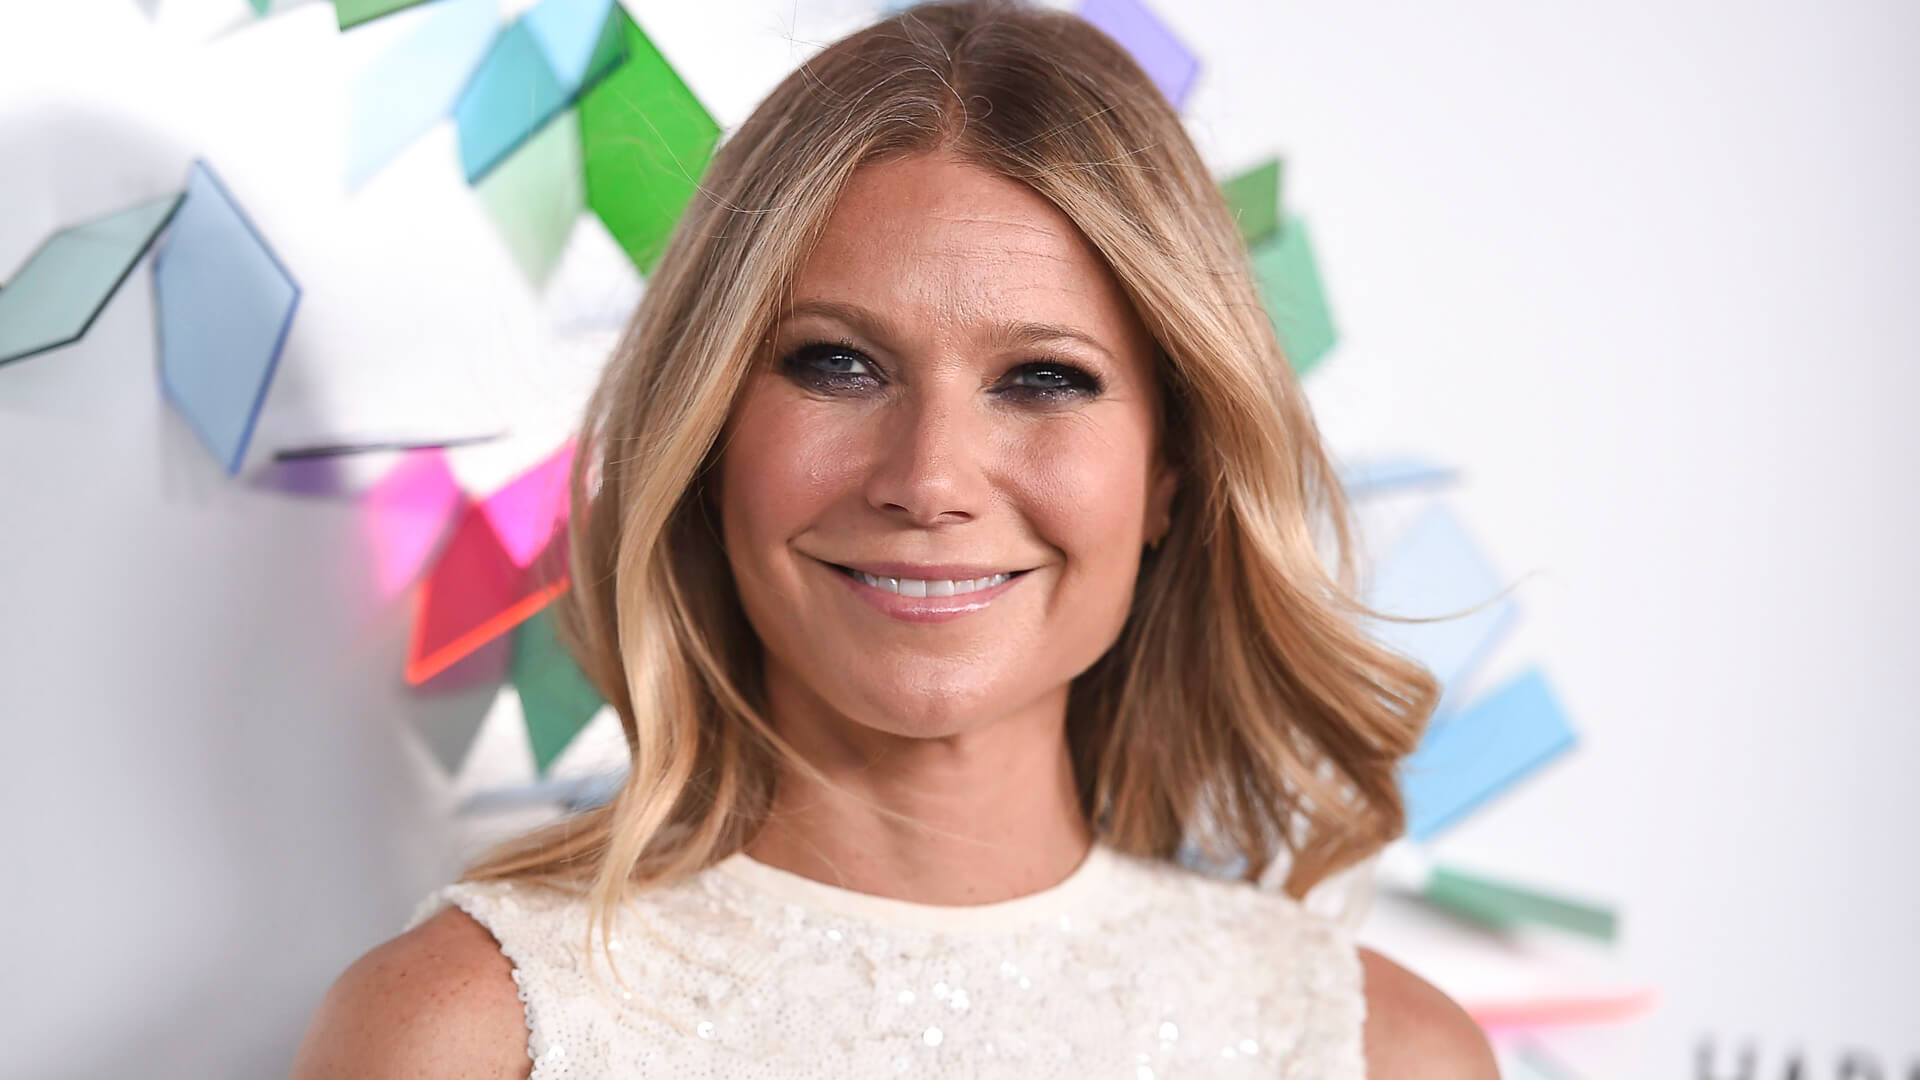 How Much Is Gwyneth Paltrow Worth? A Look at the Finances of Goop's Founder